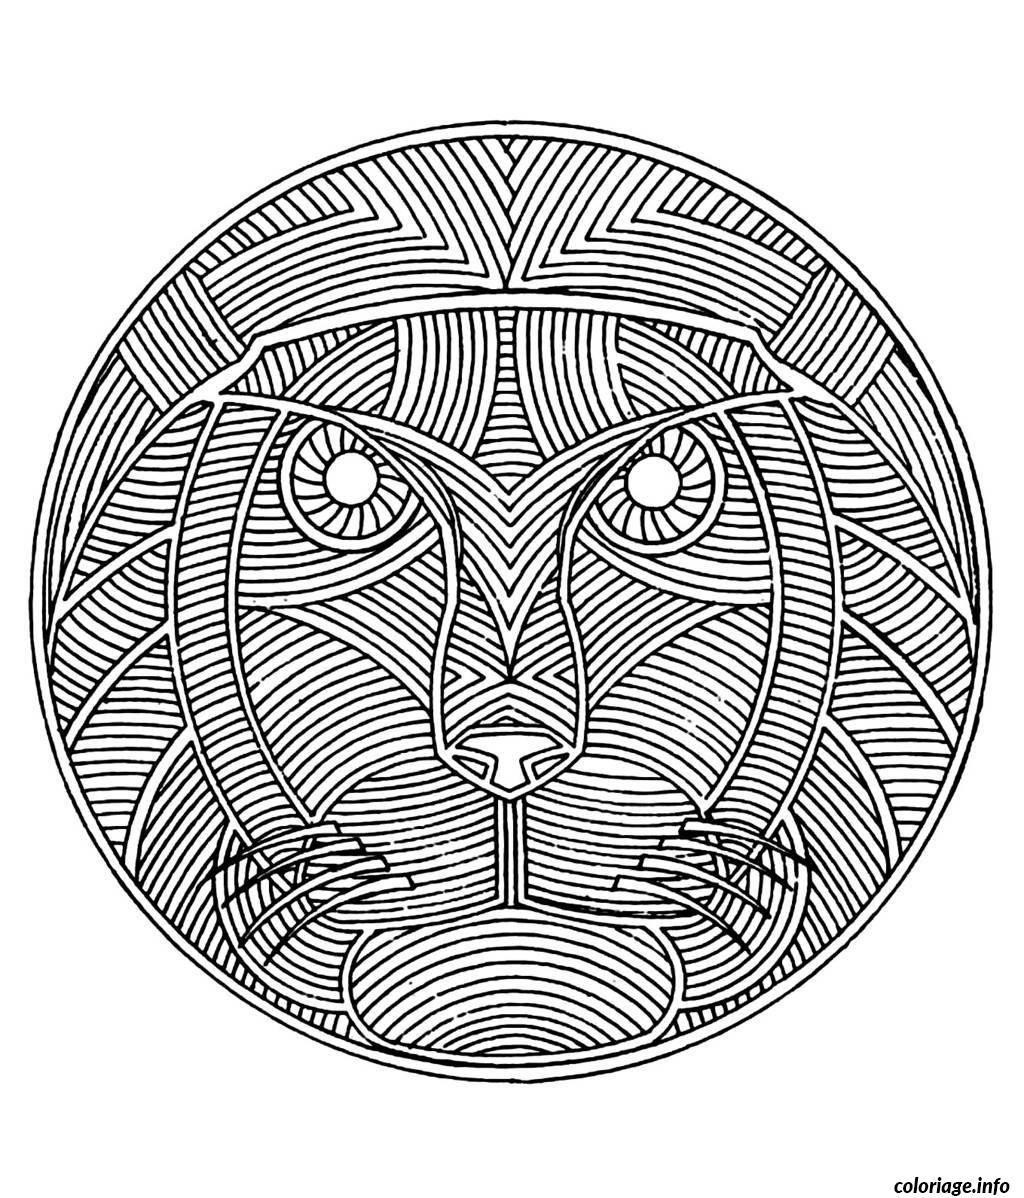 Coloriage coloring free mandala difficult adult to print - Coloriage prin ...